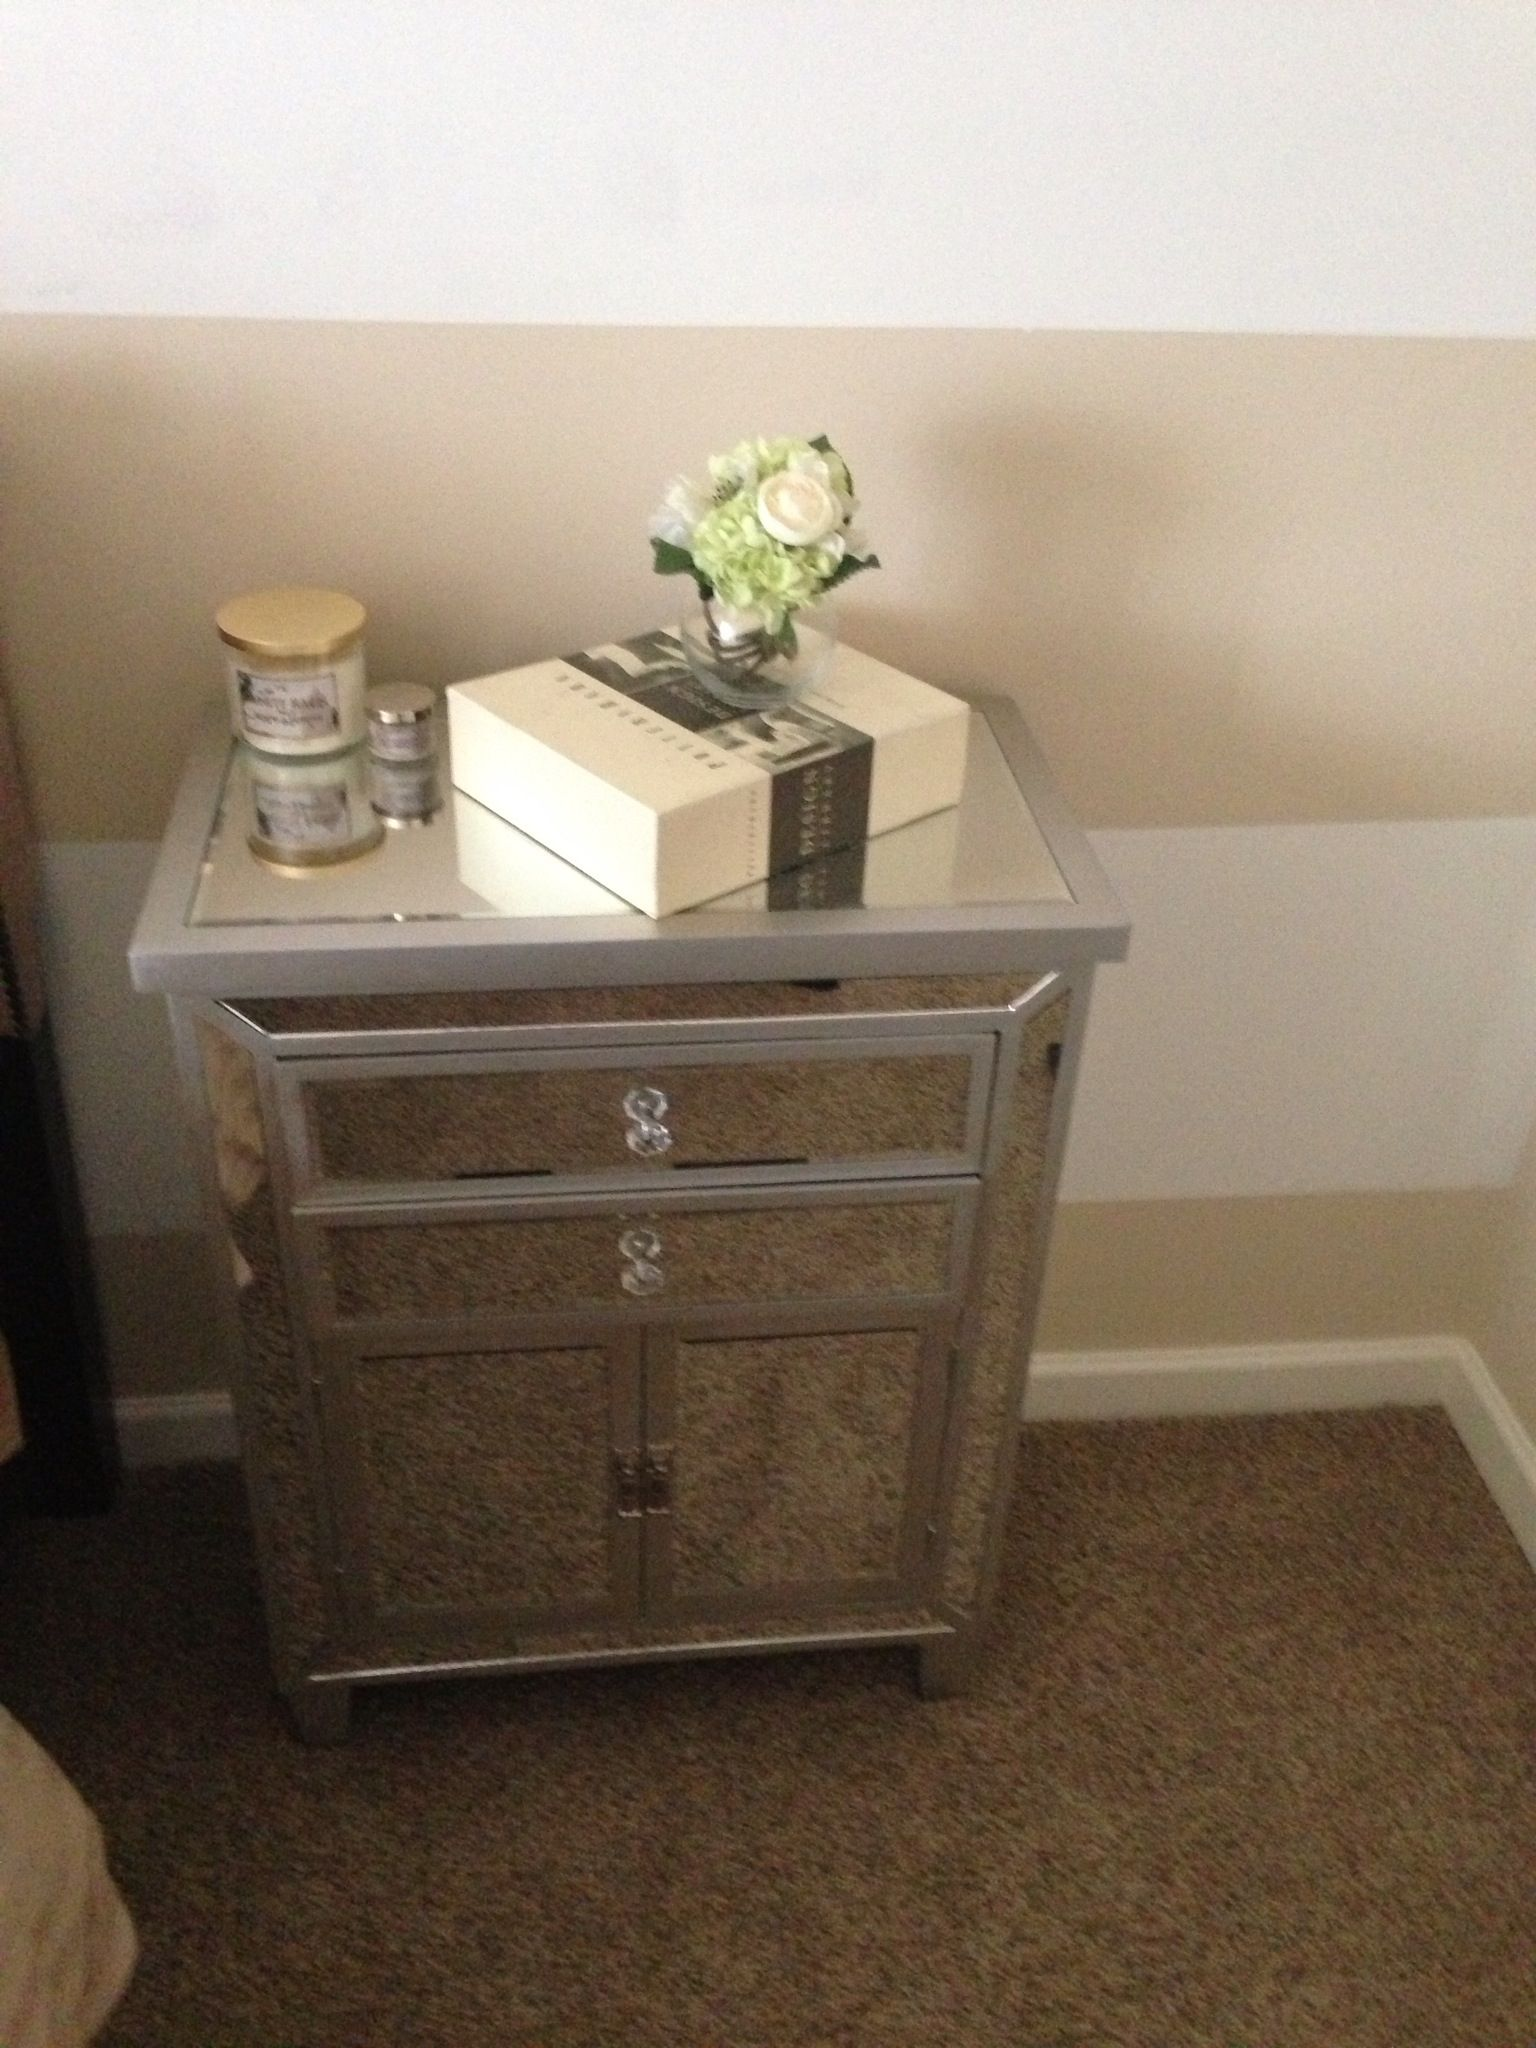 Superbe Hayworth Collection Dupe From Garden Ridge Compare $219 To $149